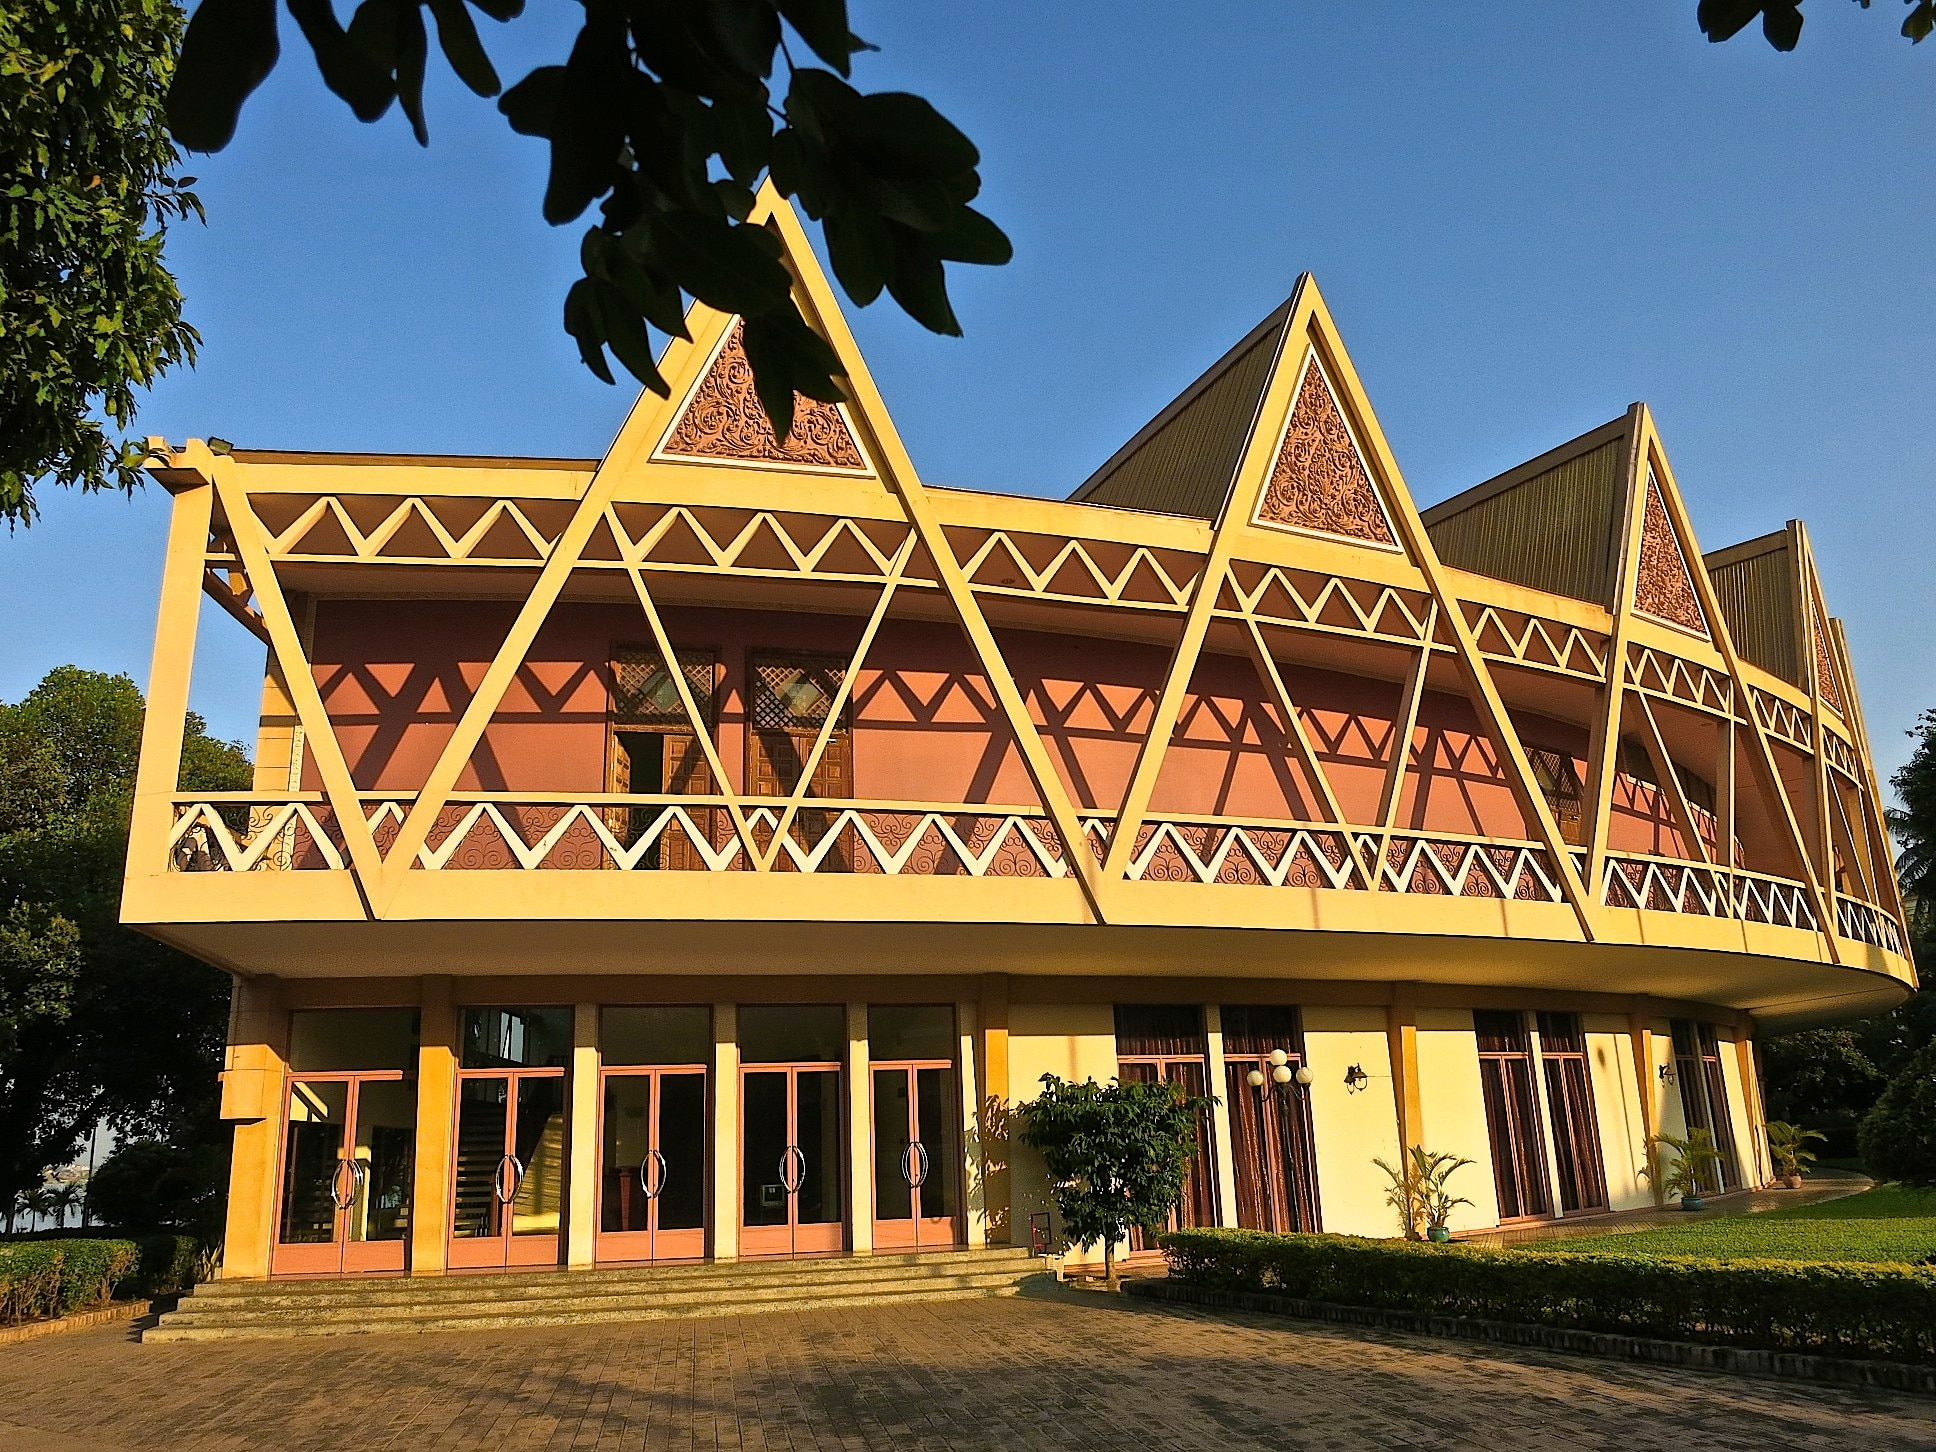 The Tchaktomuk conference centre on the shores of the Tonlé Sap lake opened in 1961.